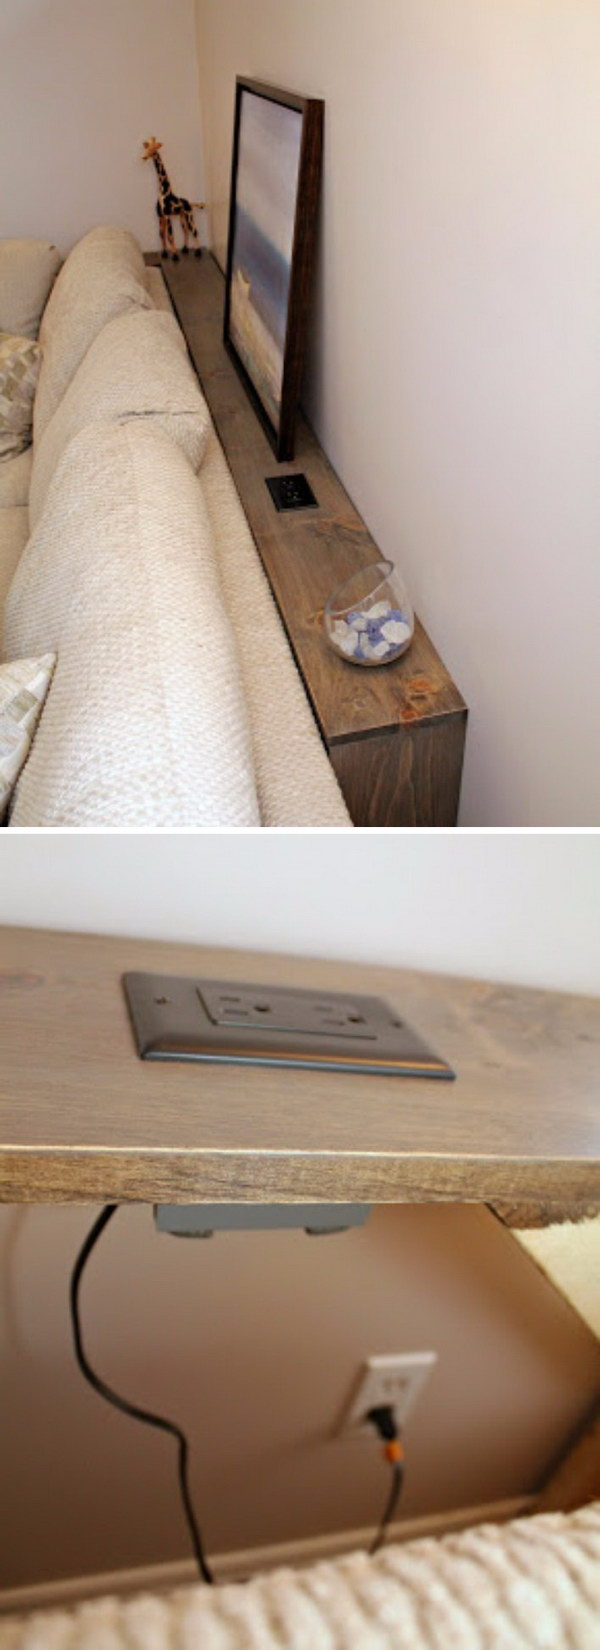 Exceptional This DIY Sofa Table Behind Built In Outlets Allows You Plug In Your  Electronics Easily.